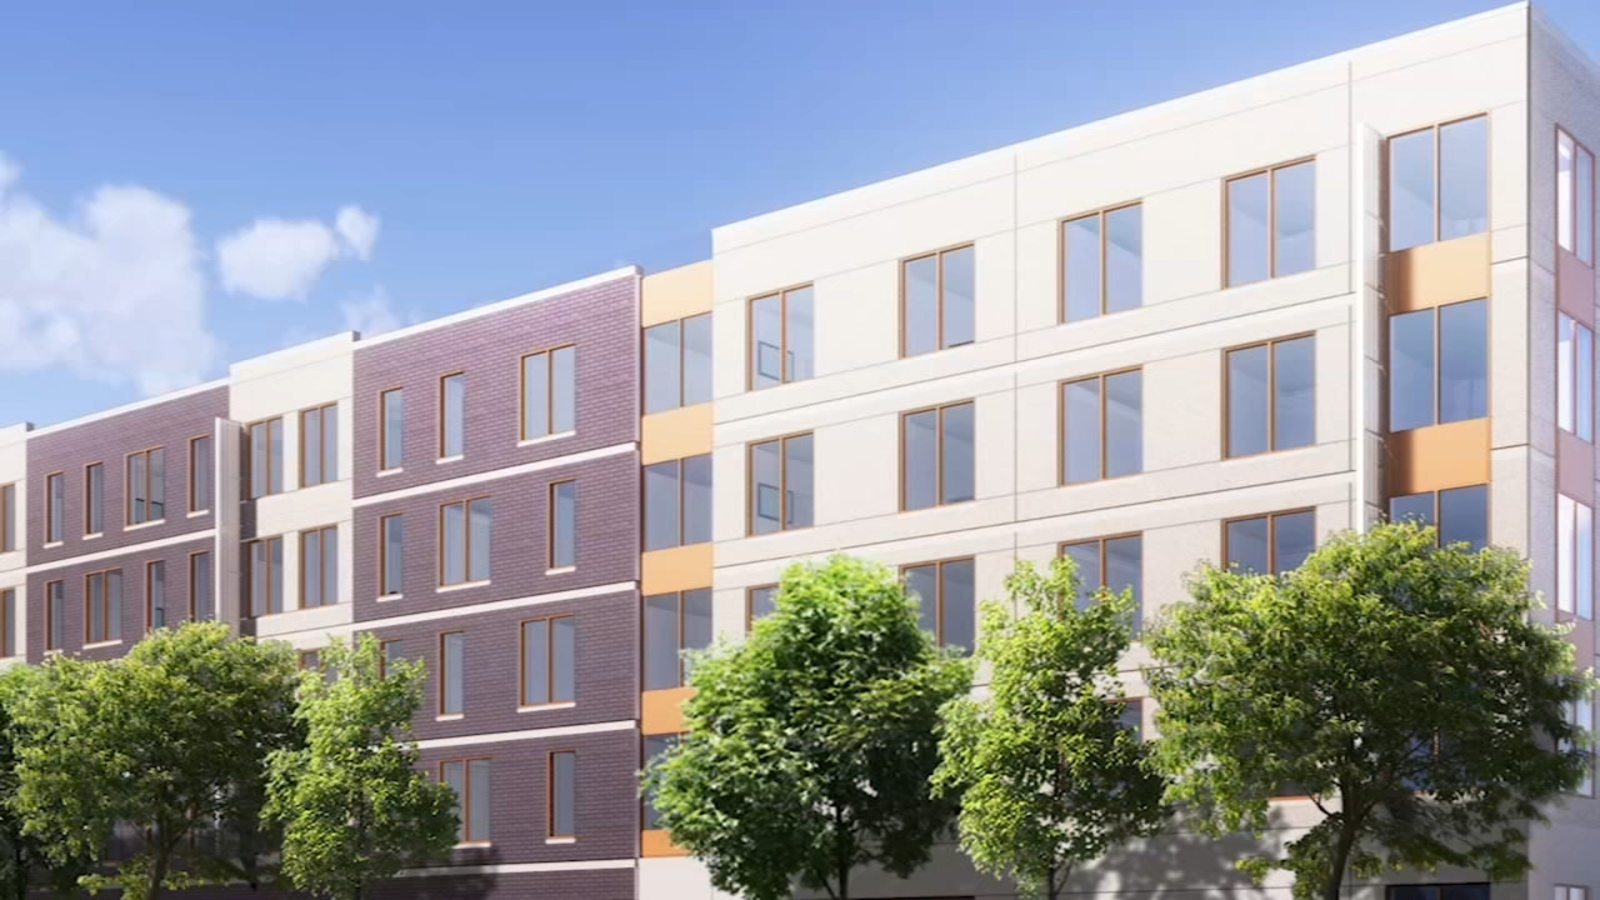 Maywood development brings affordable housing, innovation to western suburbs